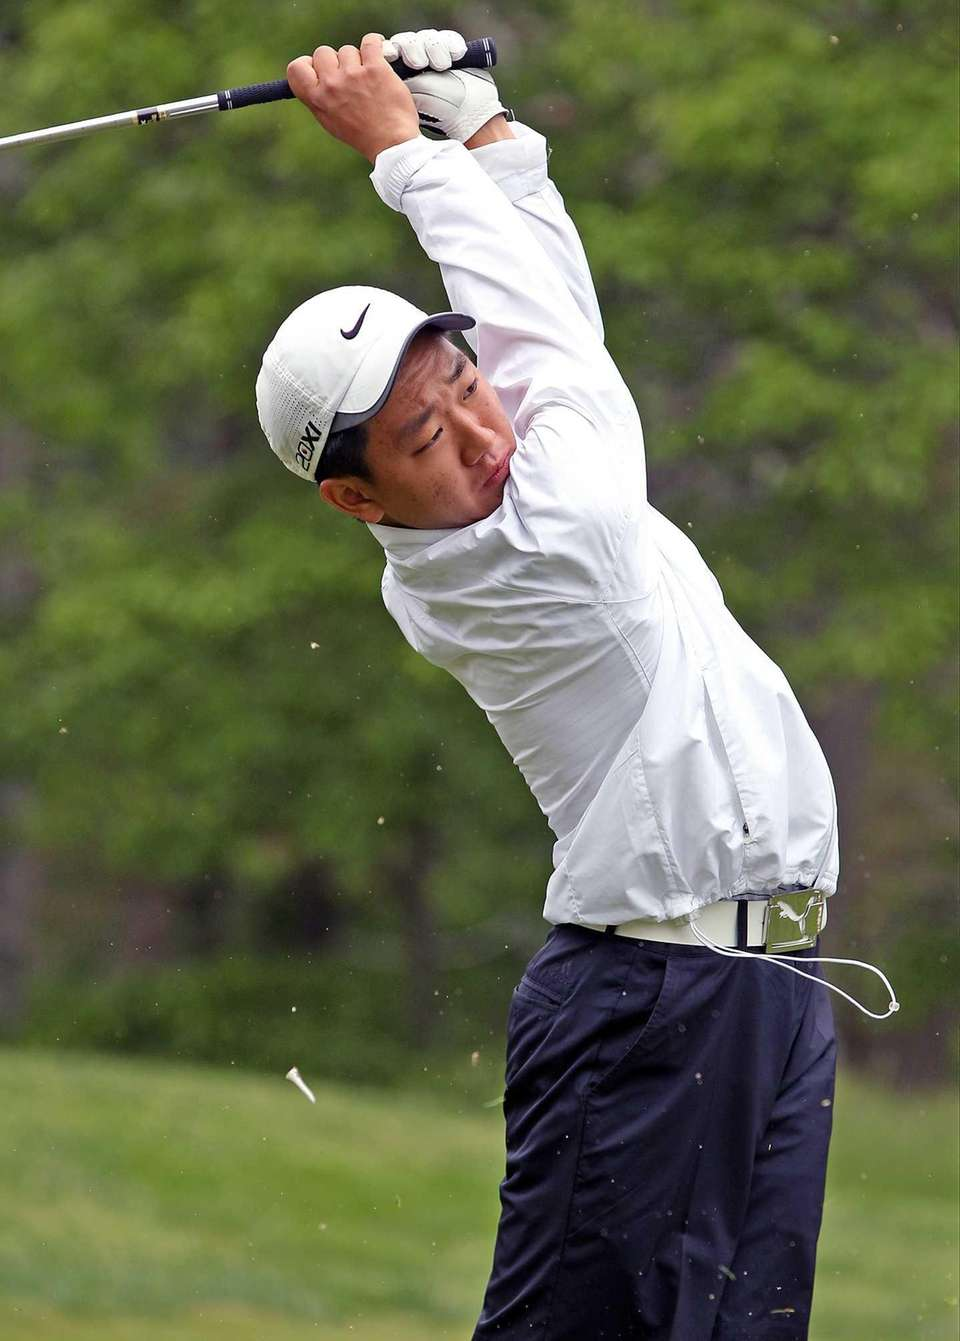 Sewanhaka's Chris Yeom tees off on a hole